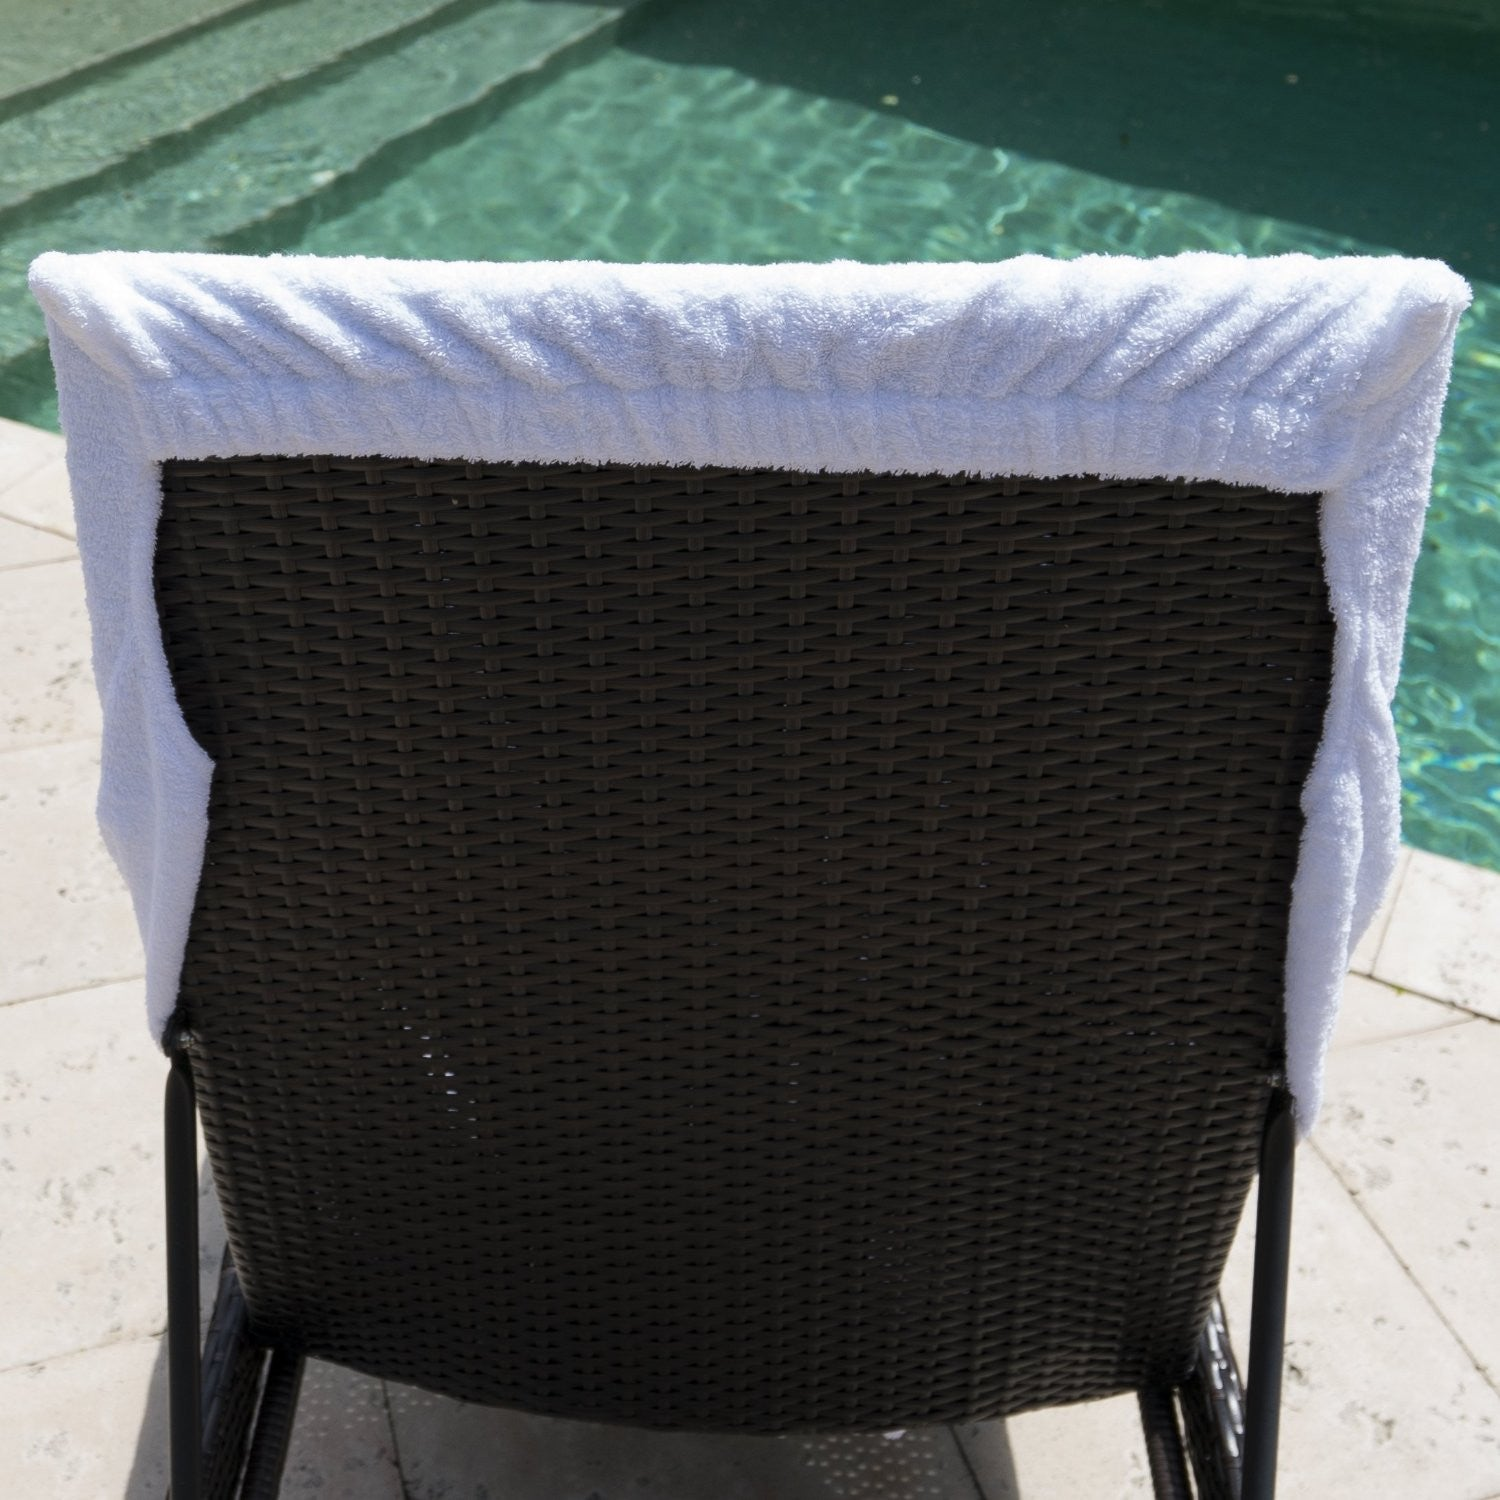 Winter Park Towel Co Resort Terry Lounge Chair Towel White – FLandB